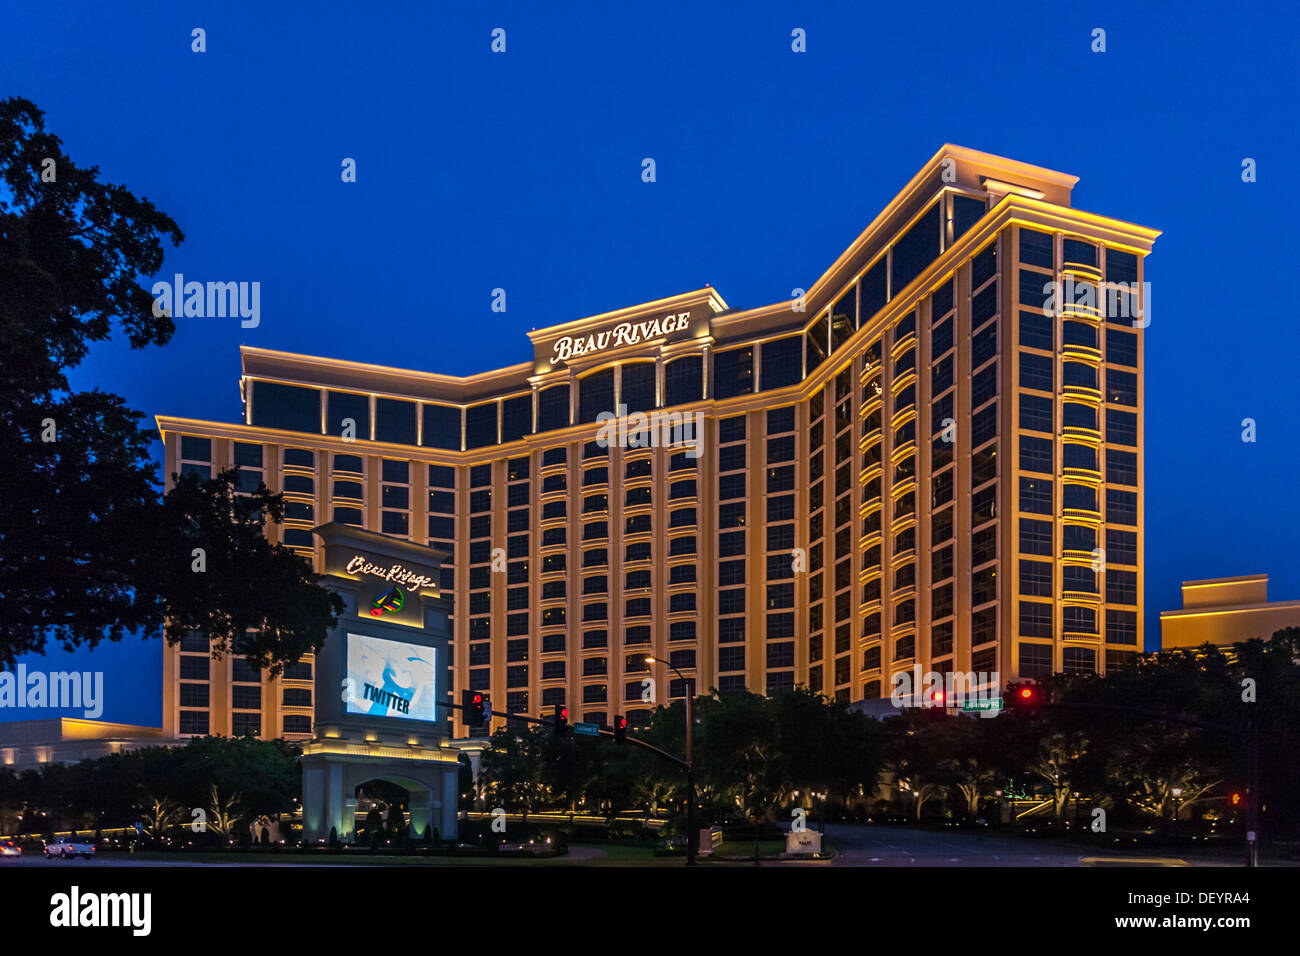 Beau Rivage Casino On The Mississippi Gulf Coast In Biloxi Ms